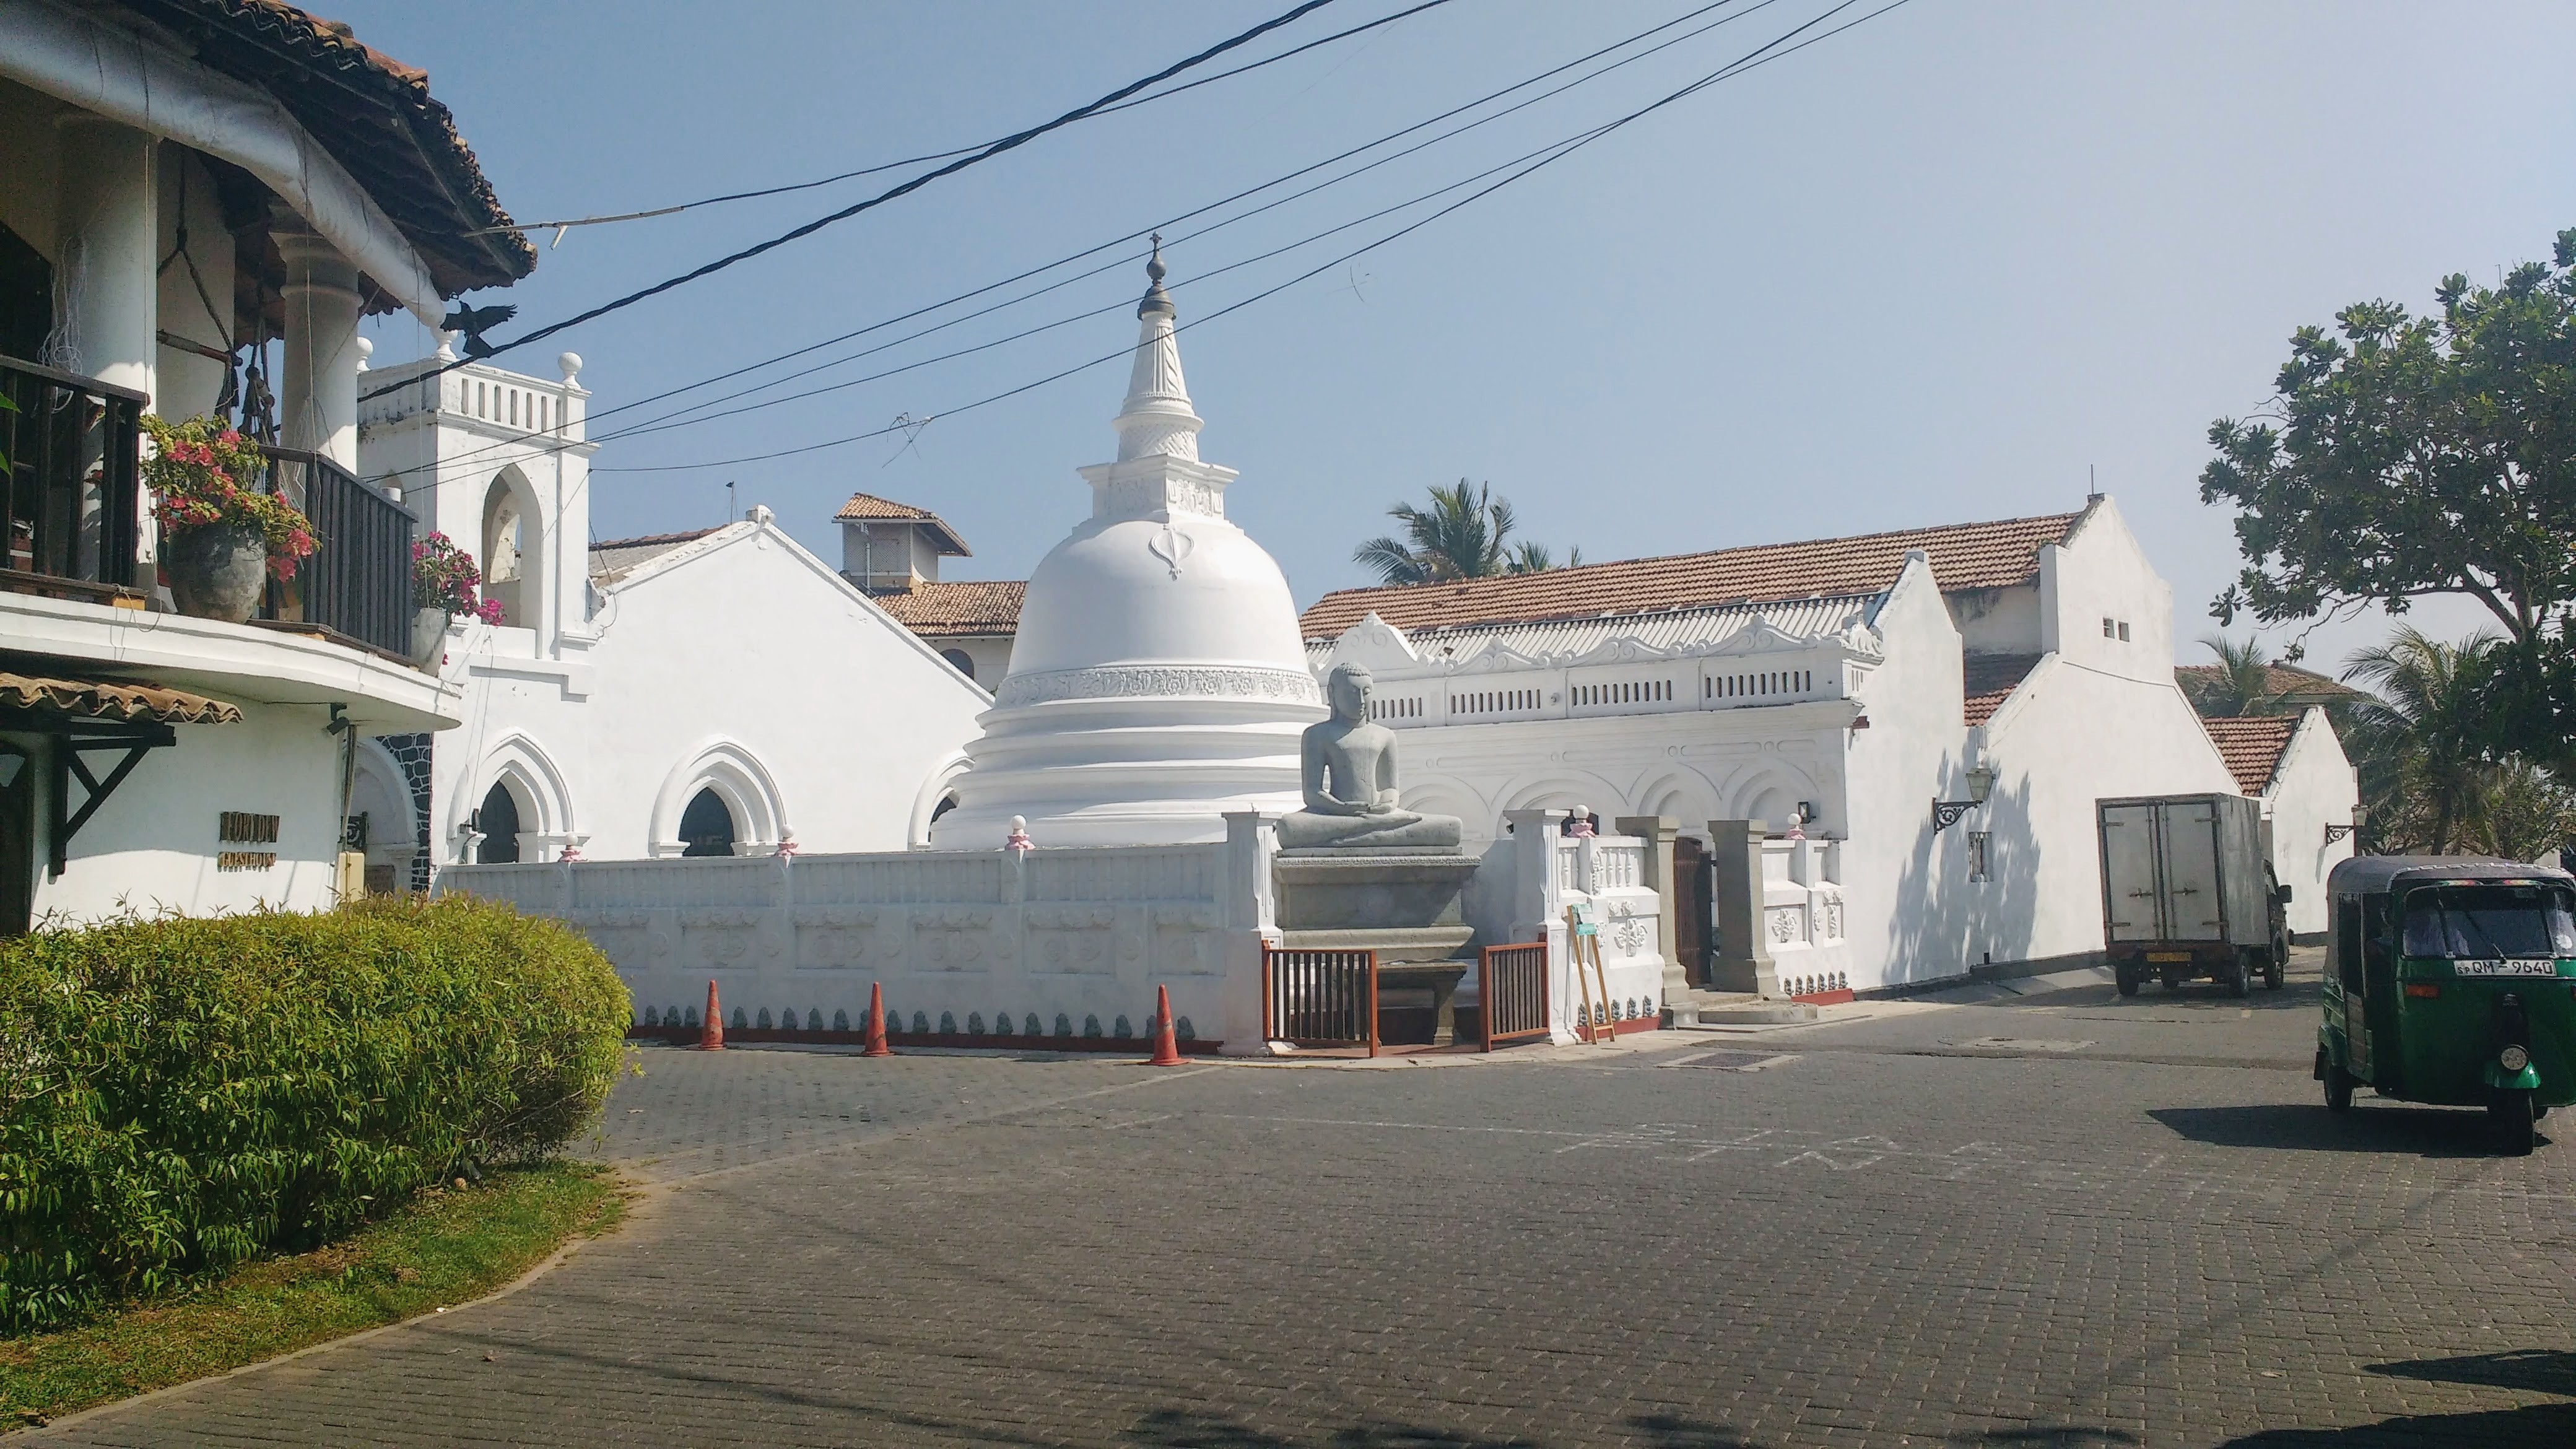 Buddist temple. Just round the corner is a huge mosque